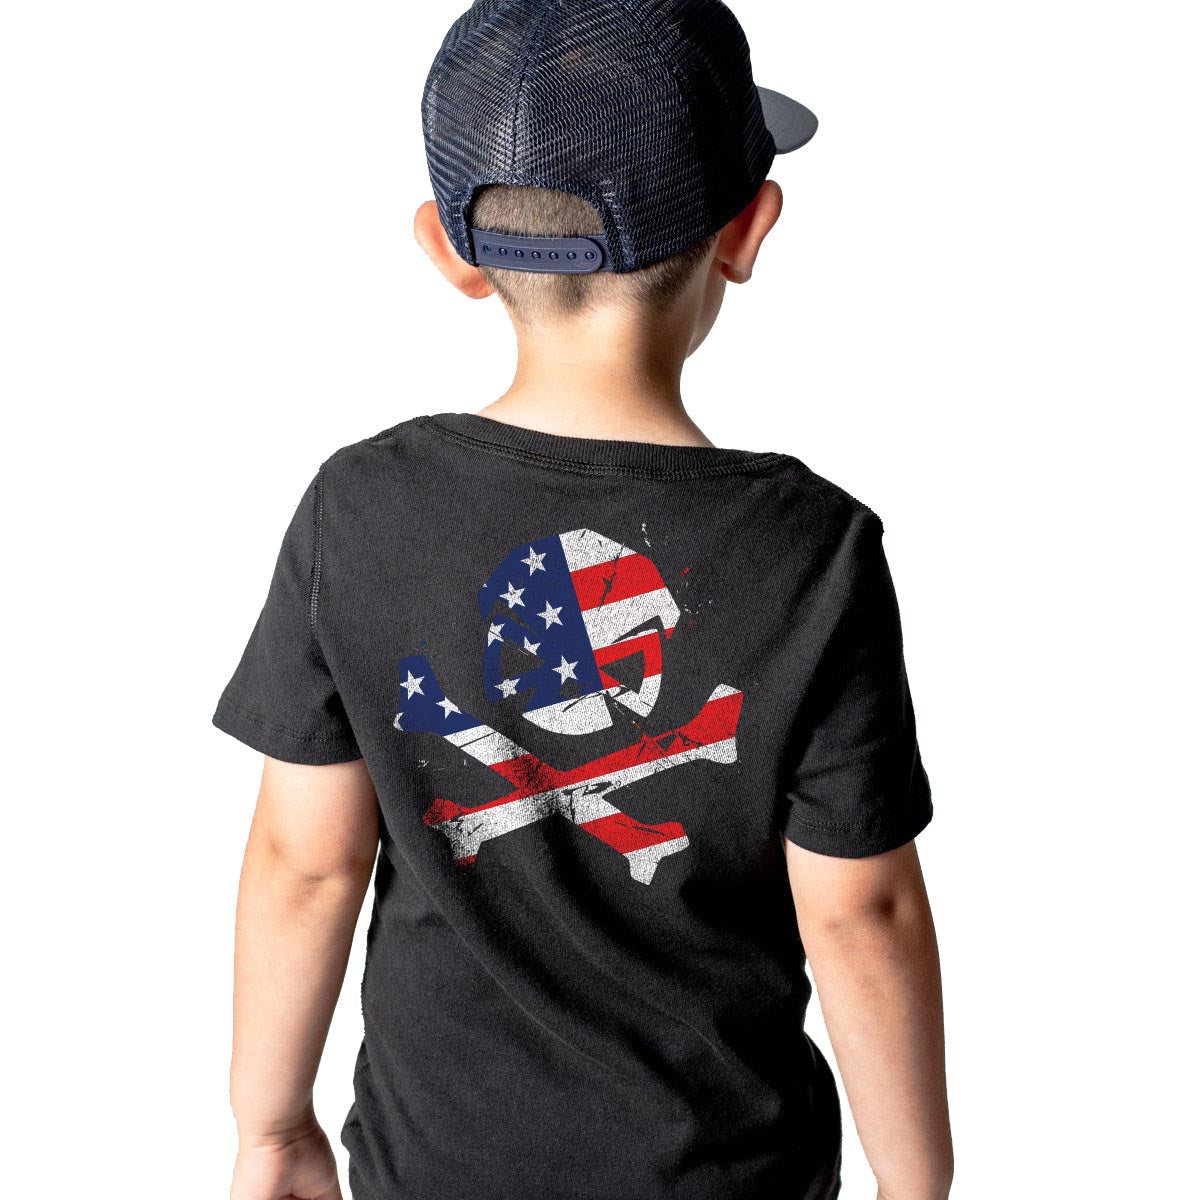 American Patriot - Youth - Black - T-Shirts - Pipe Hitters Union